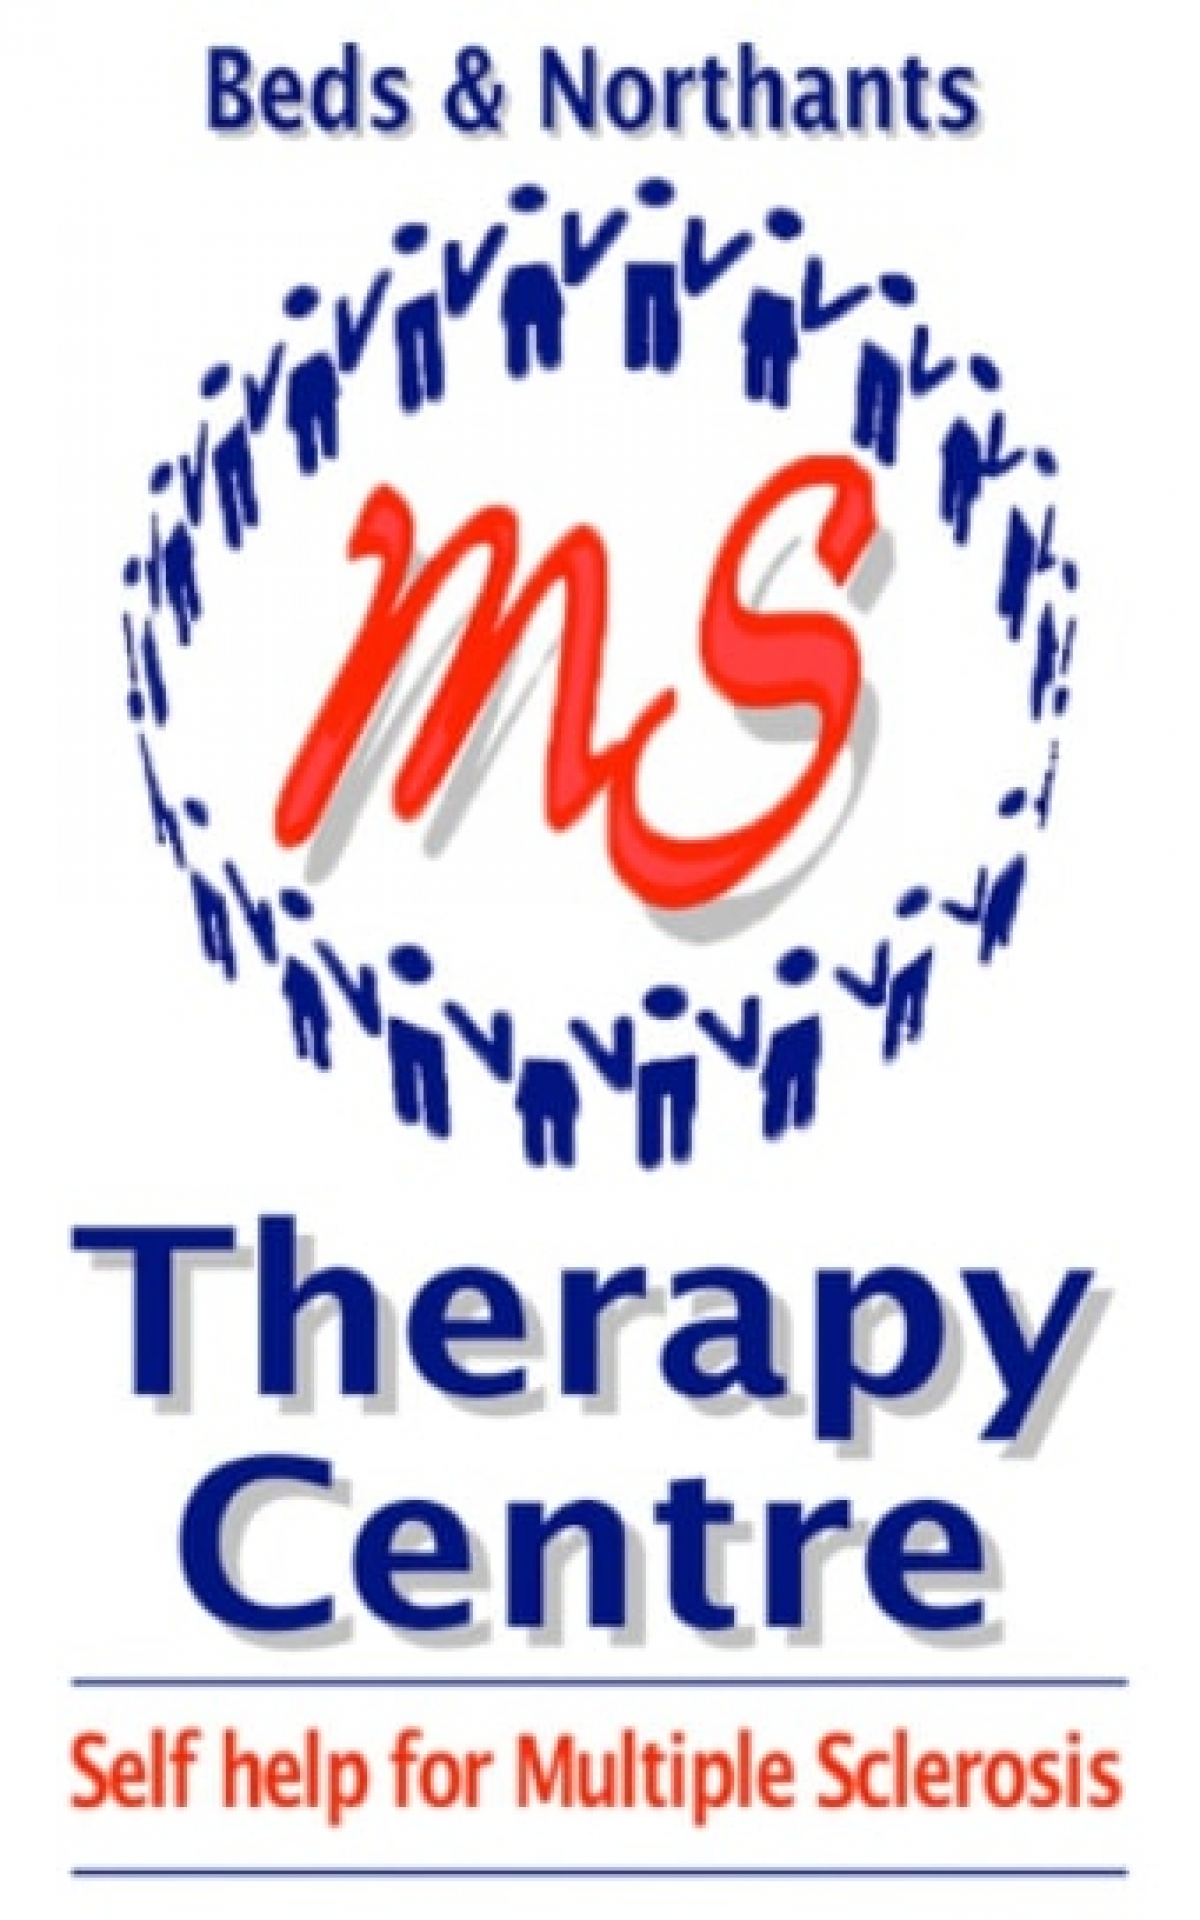 MS Therapy Centre Beds and Northants eCards